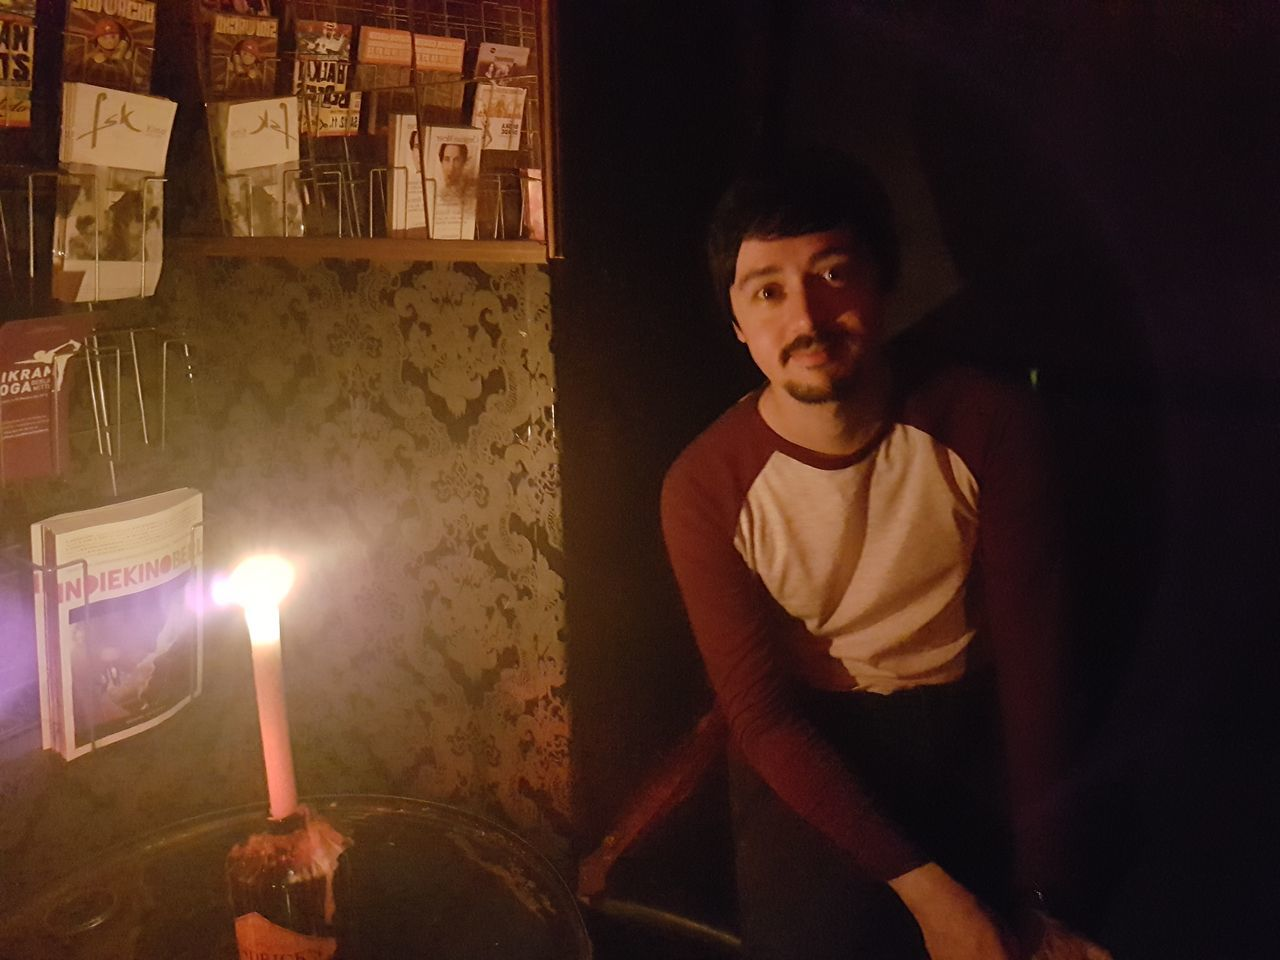 EyeEm Selects One Person One Man Only Only Men Adult People Adults Only Indoors  Night Young Adult Bar Pub Candlelight Candle